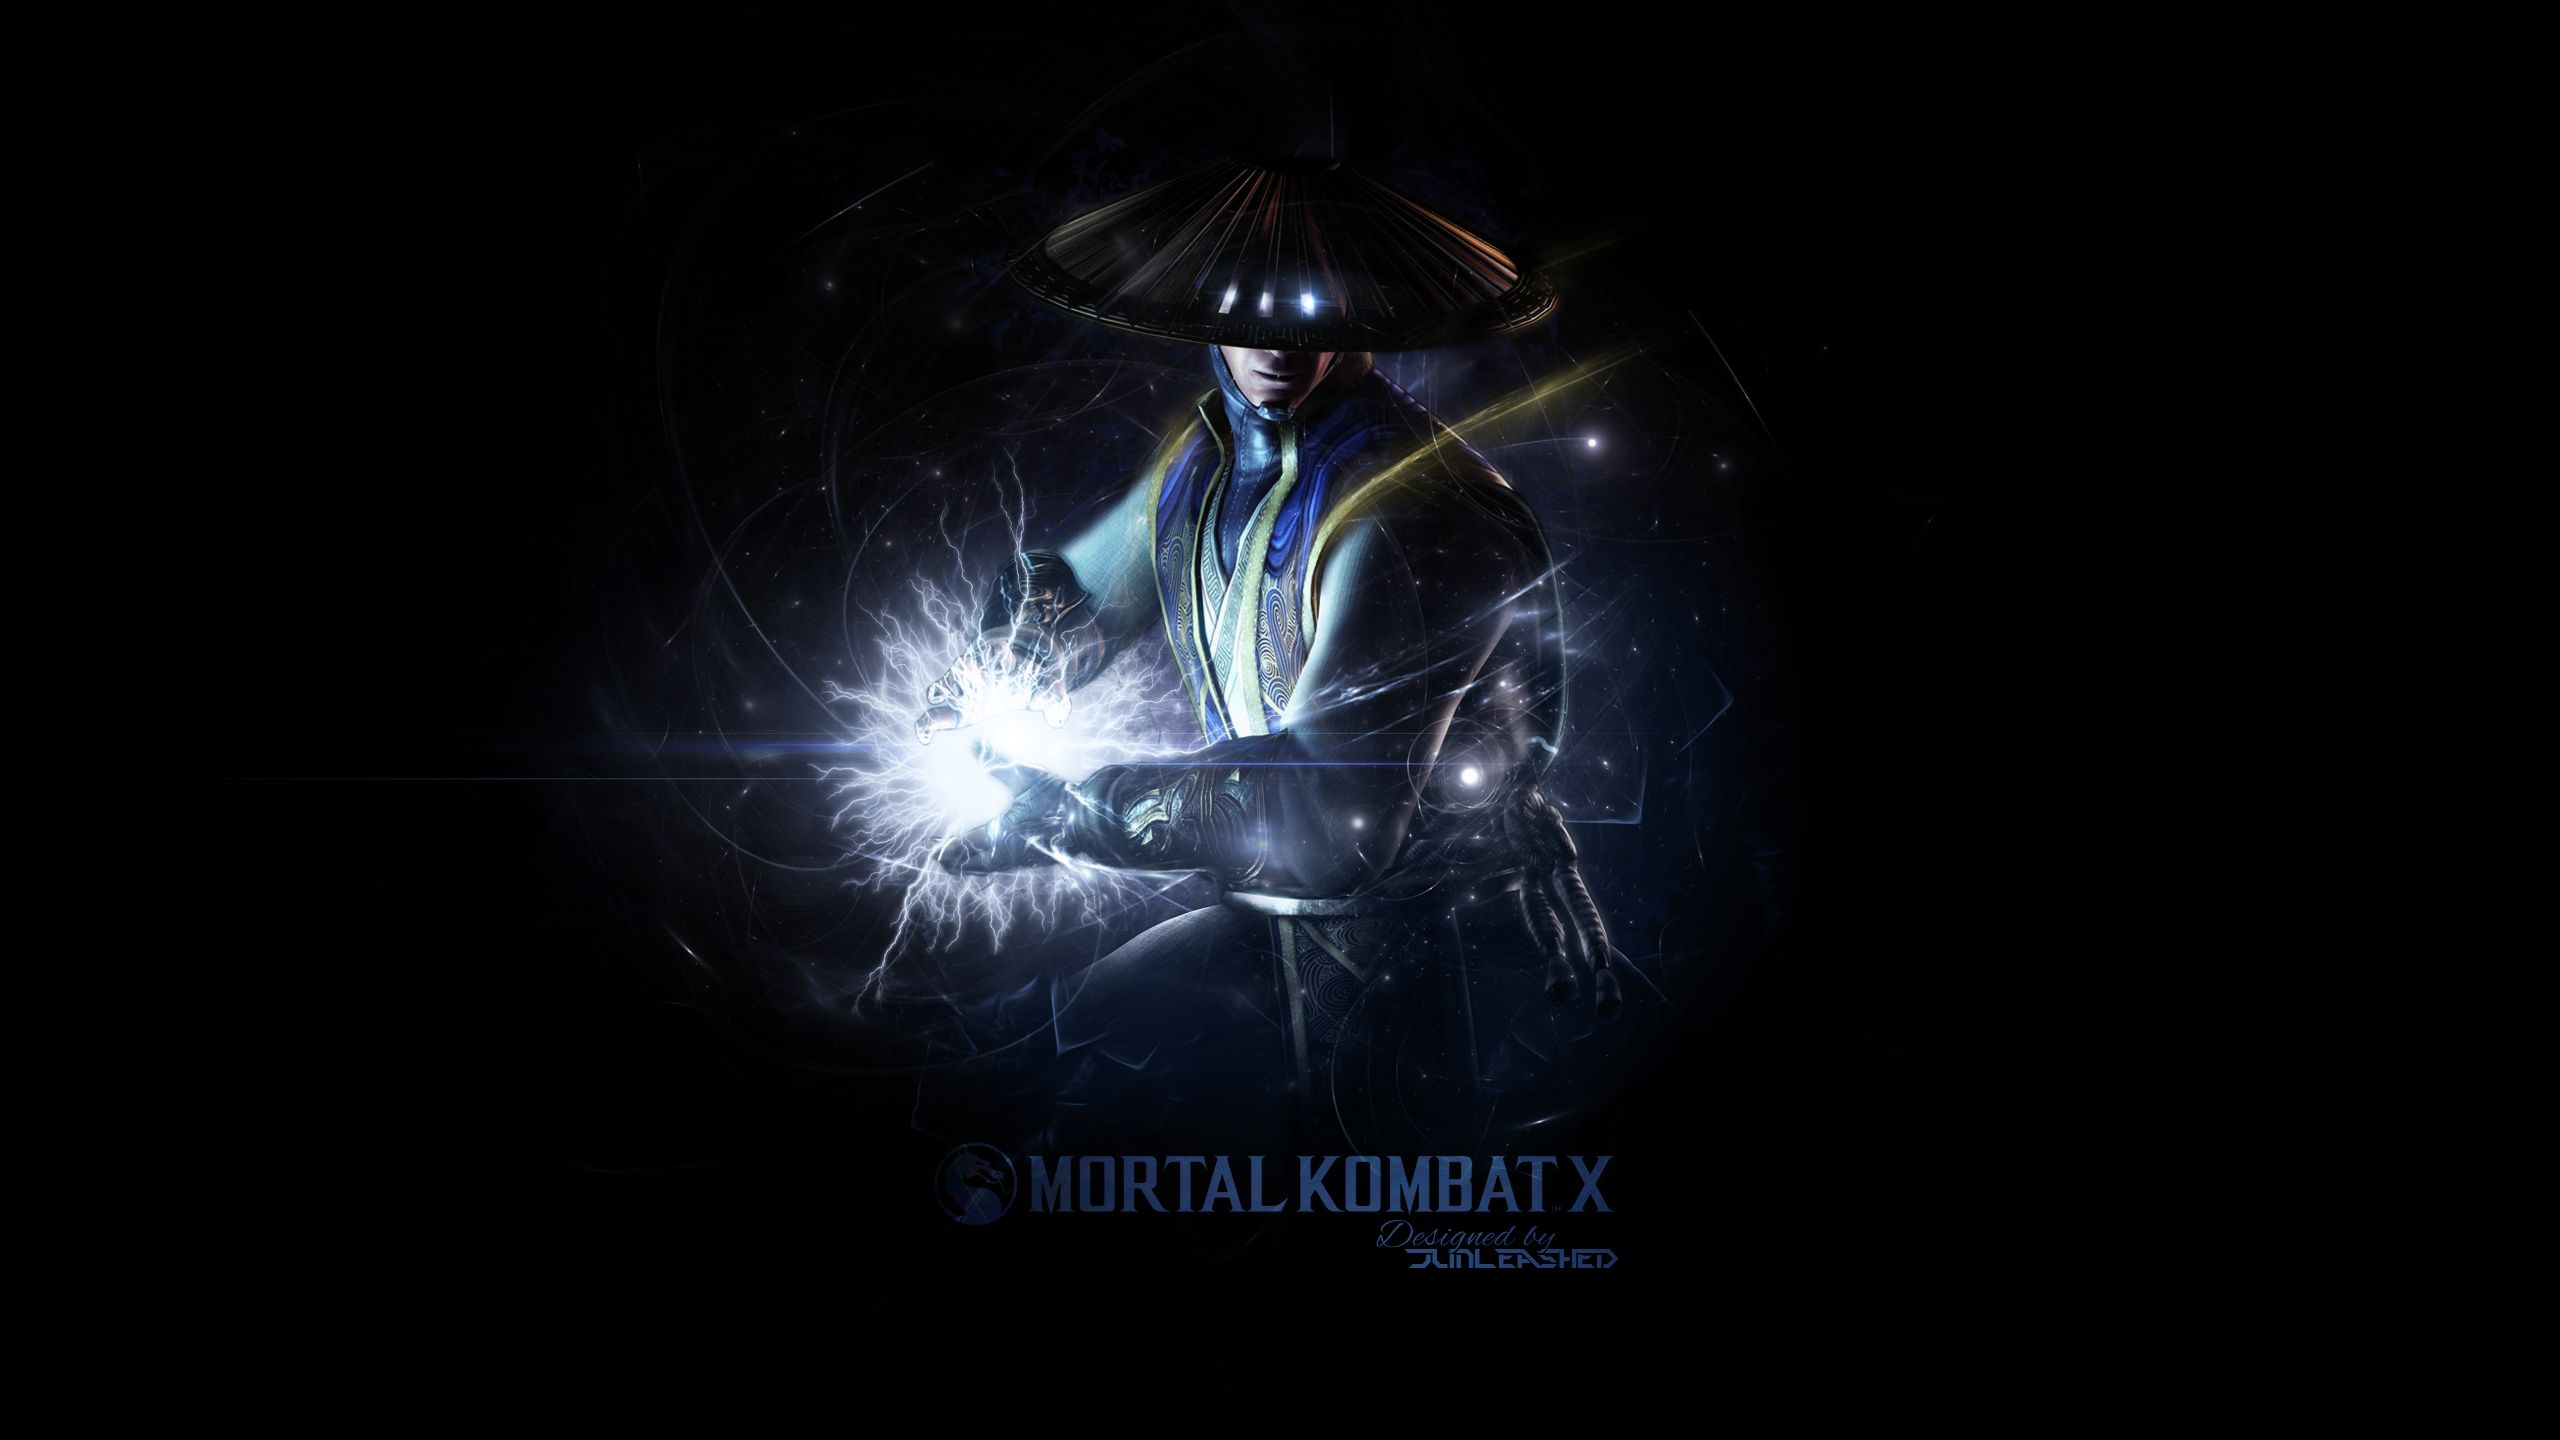 mortal kombat x raiden wallpaper gets fans excited one angry gamer